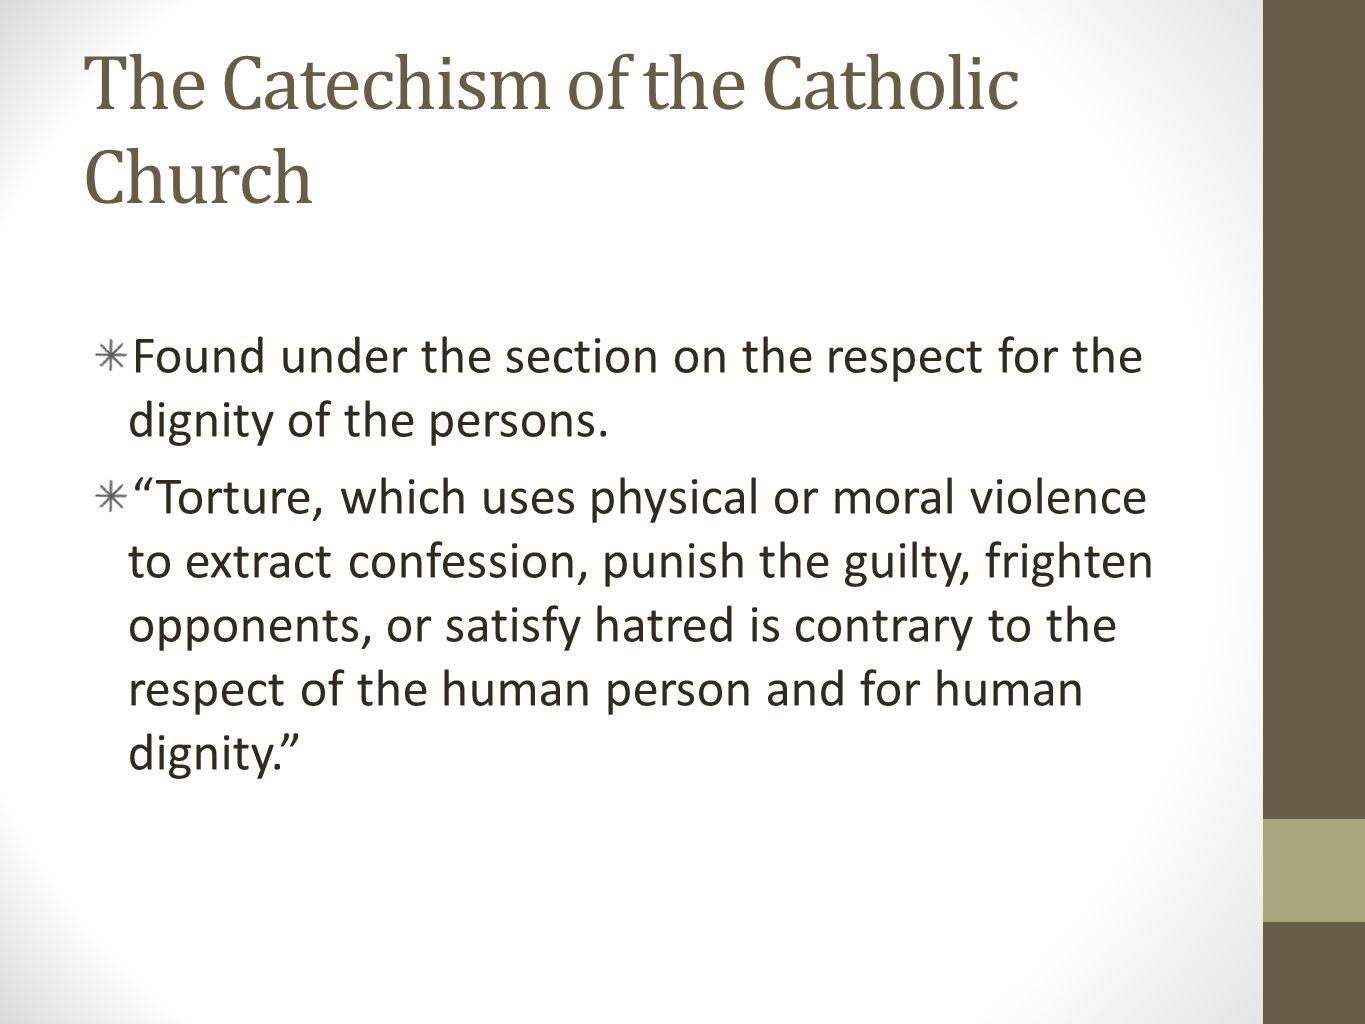 The Catechism of the Catholic Church Found under the section on the respect for the dignity of the persons.